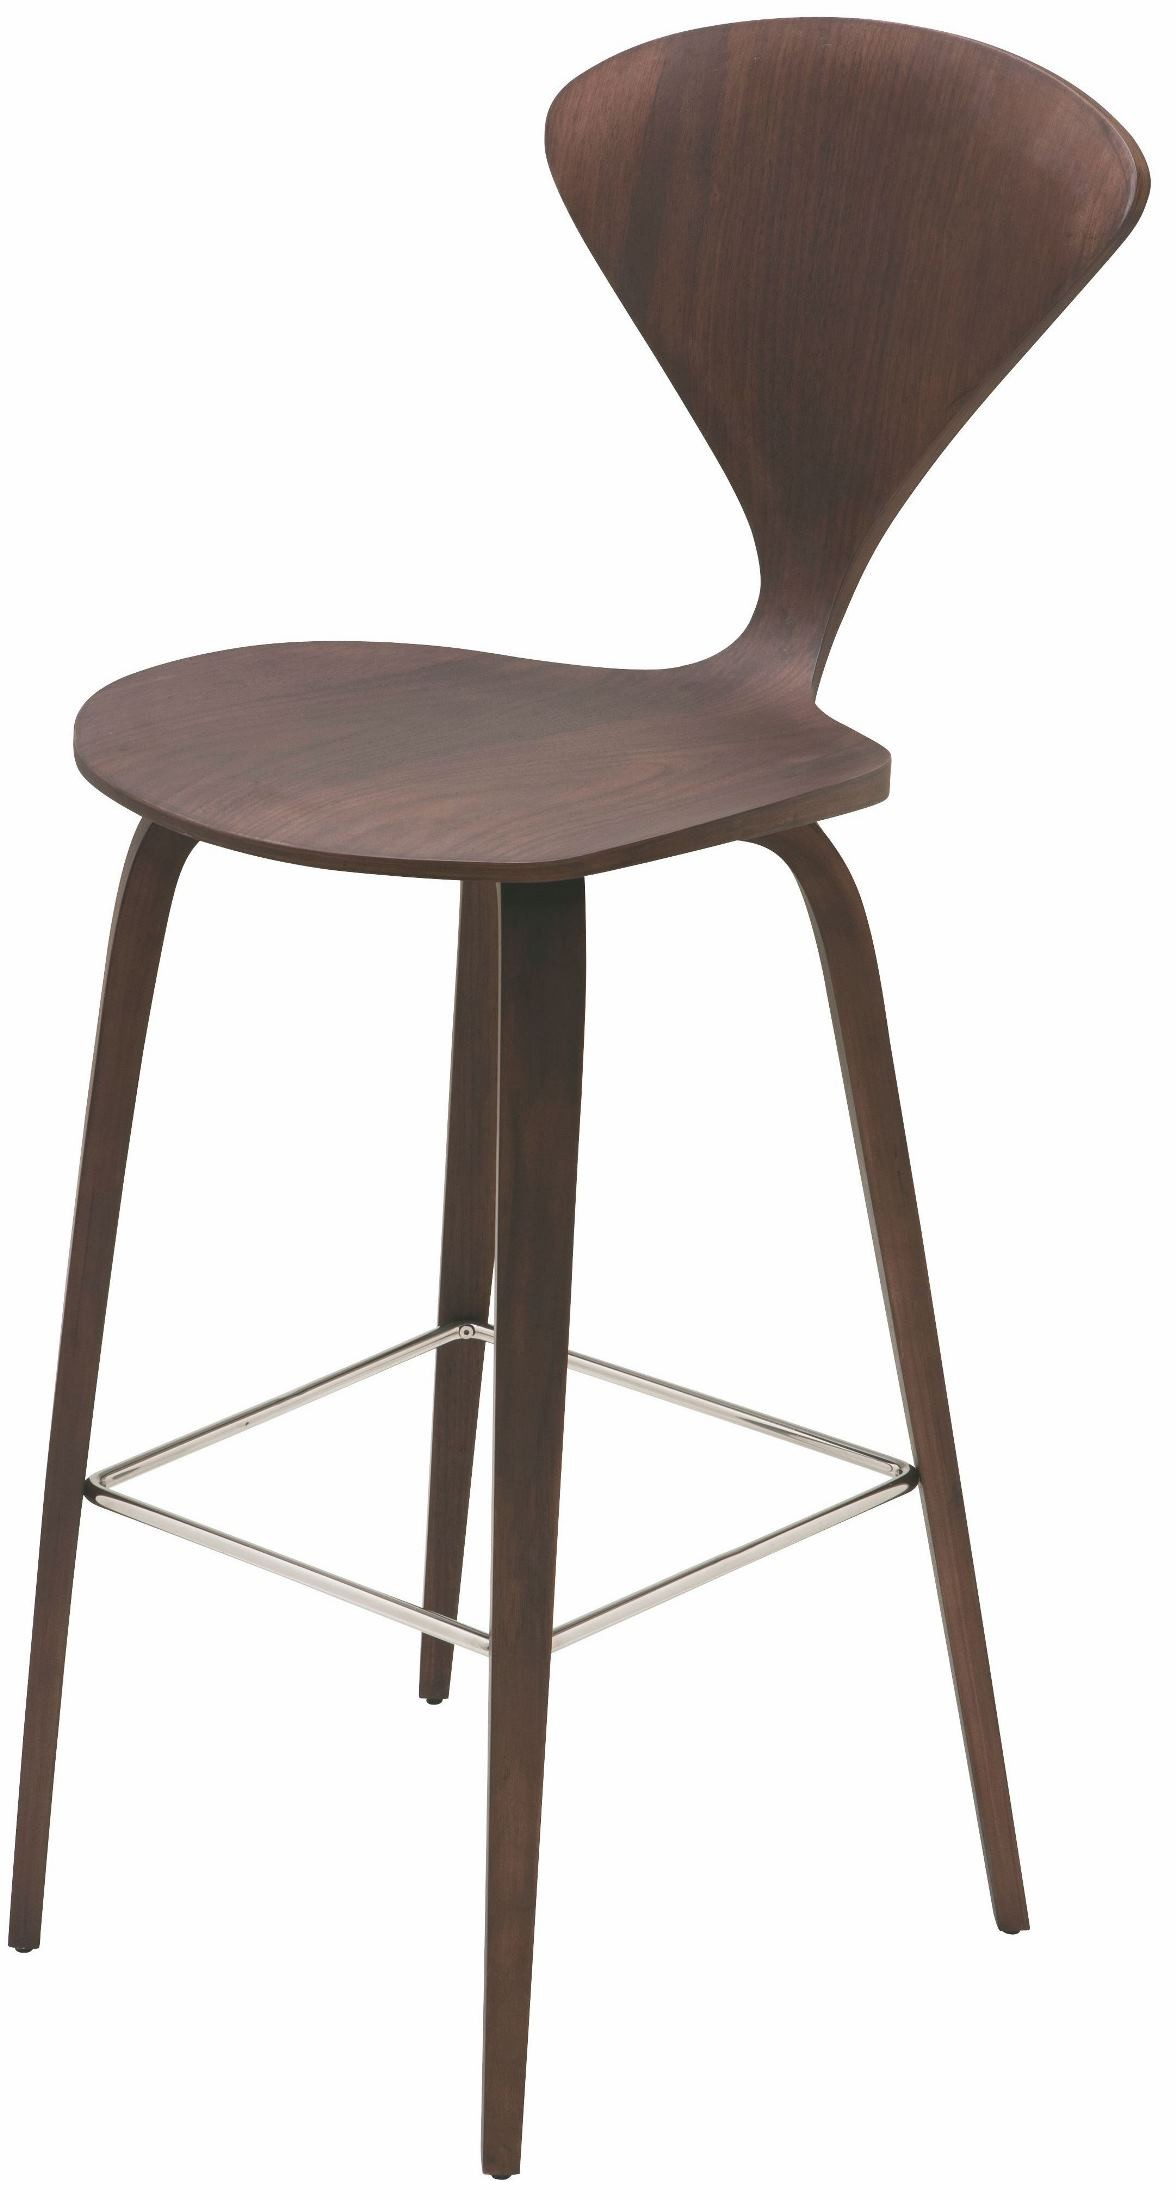 Satine Dark Walnut Wood Counter Stool From Nuevo Coleman